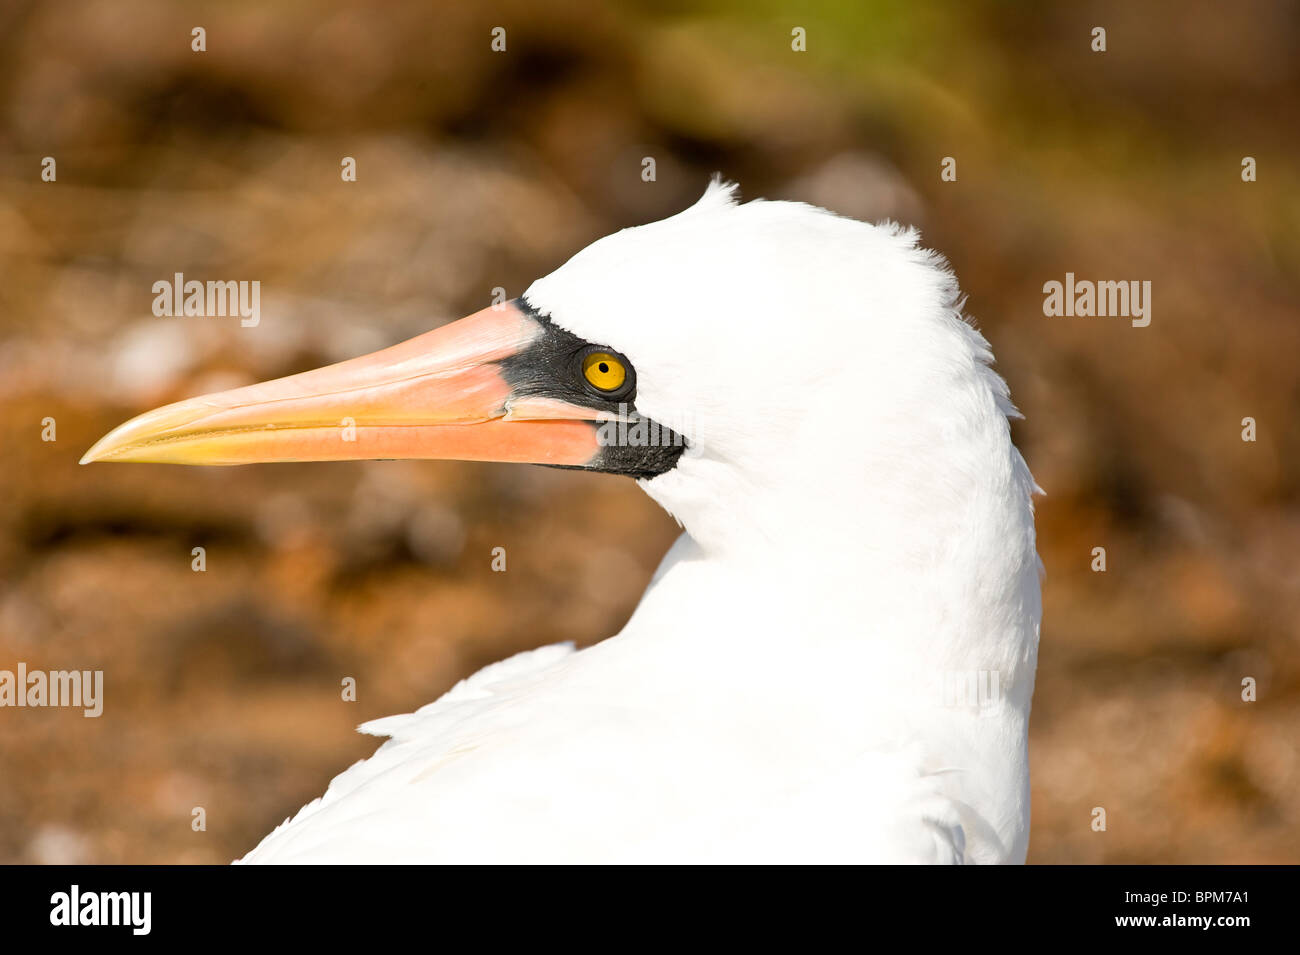 South America, Ecuador, Galapagos Islands, Nazca Booby on Genovesa Island,only black and white Booby with an orange - Stock Image